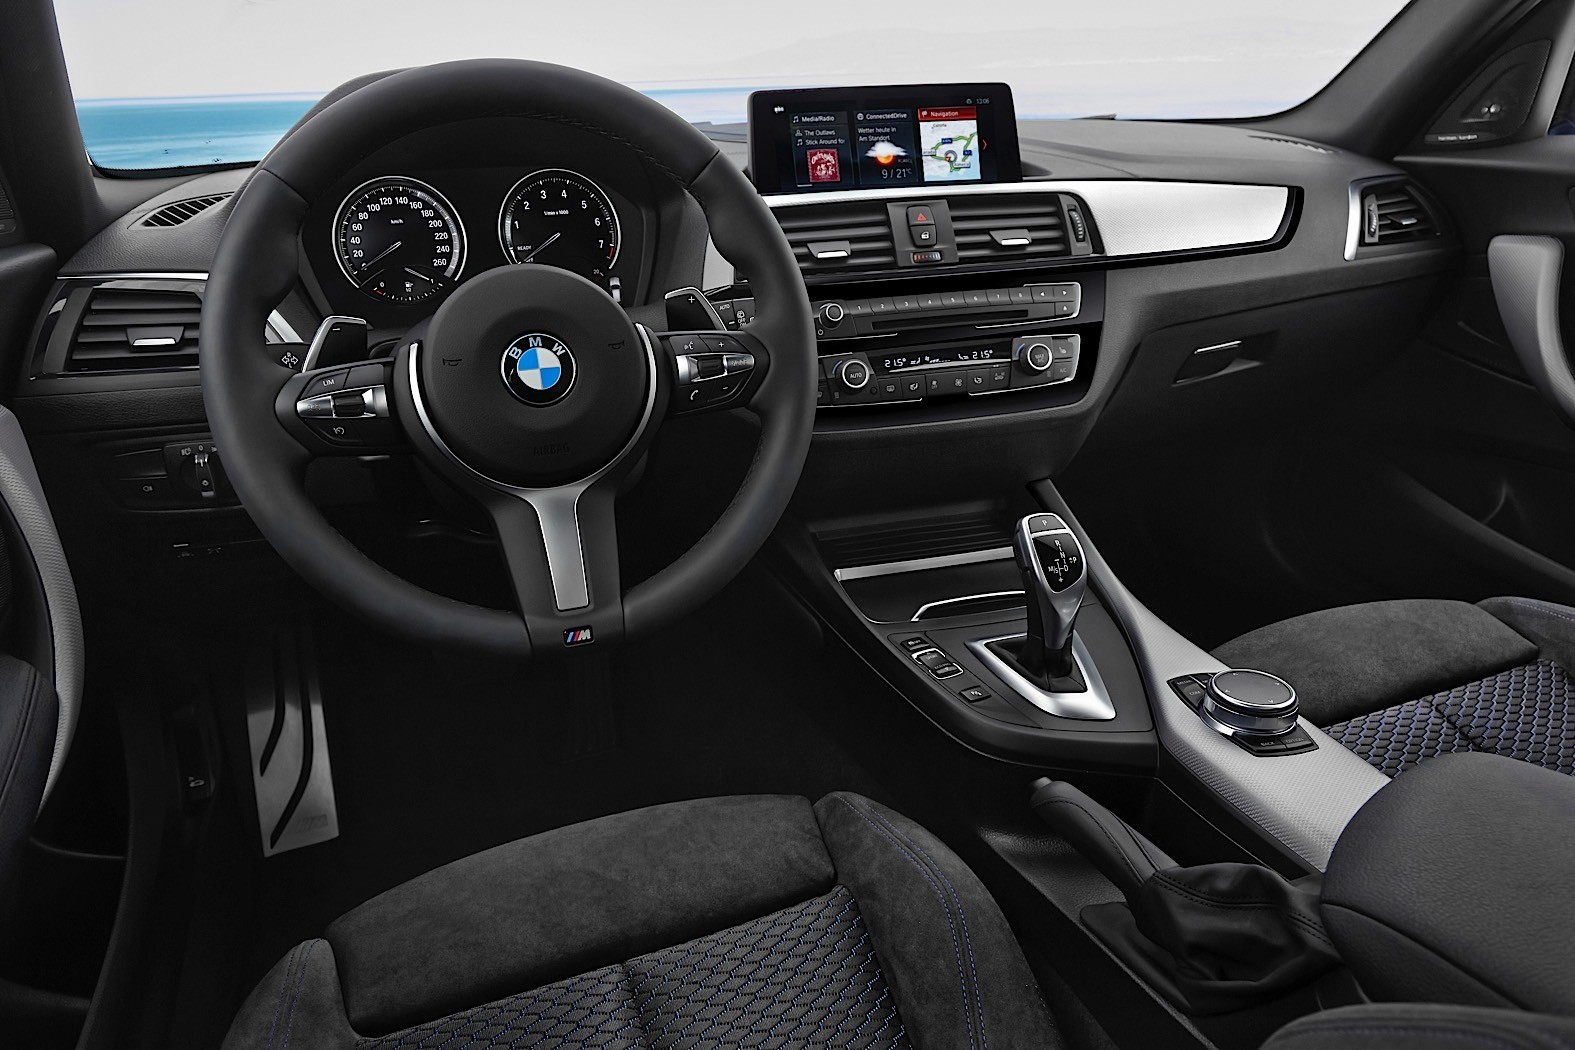 New Bmw 4 Series >> 2018 BMW 1 Series Will Go Through Some Drastic Changes - autoevolution